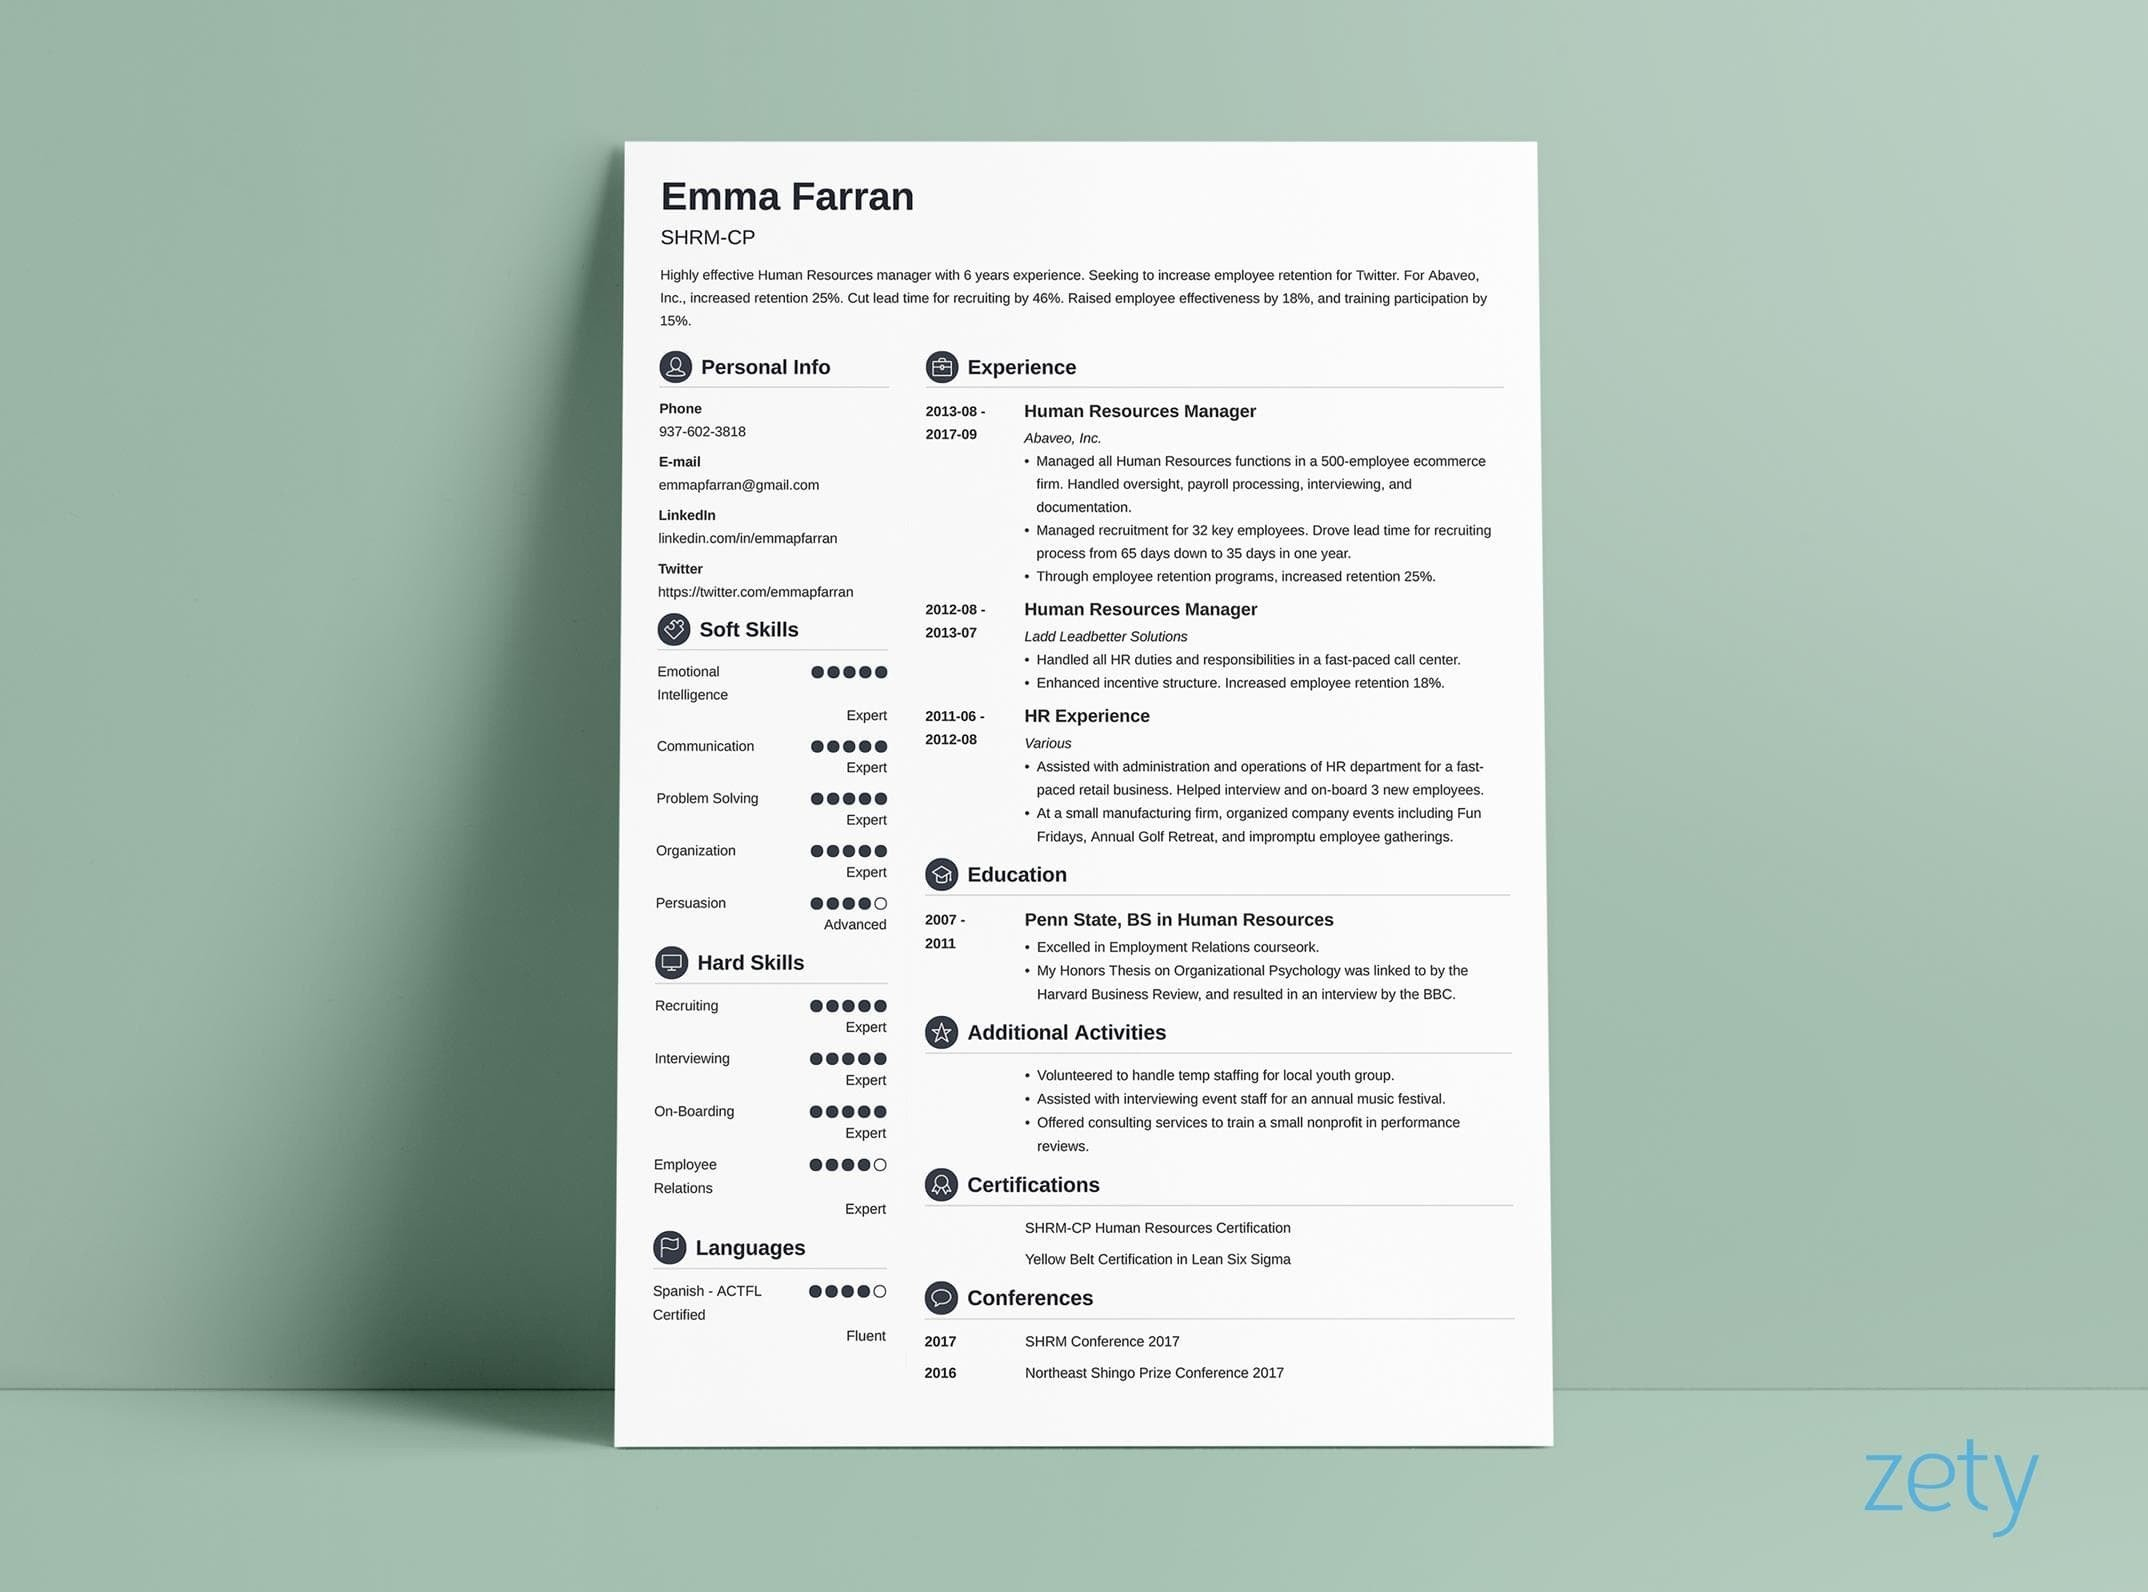 Resume Layout Examples Resume Layout 20 Templates Examples Complete Design Guide